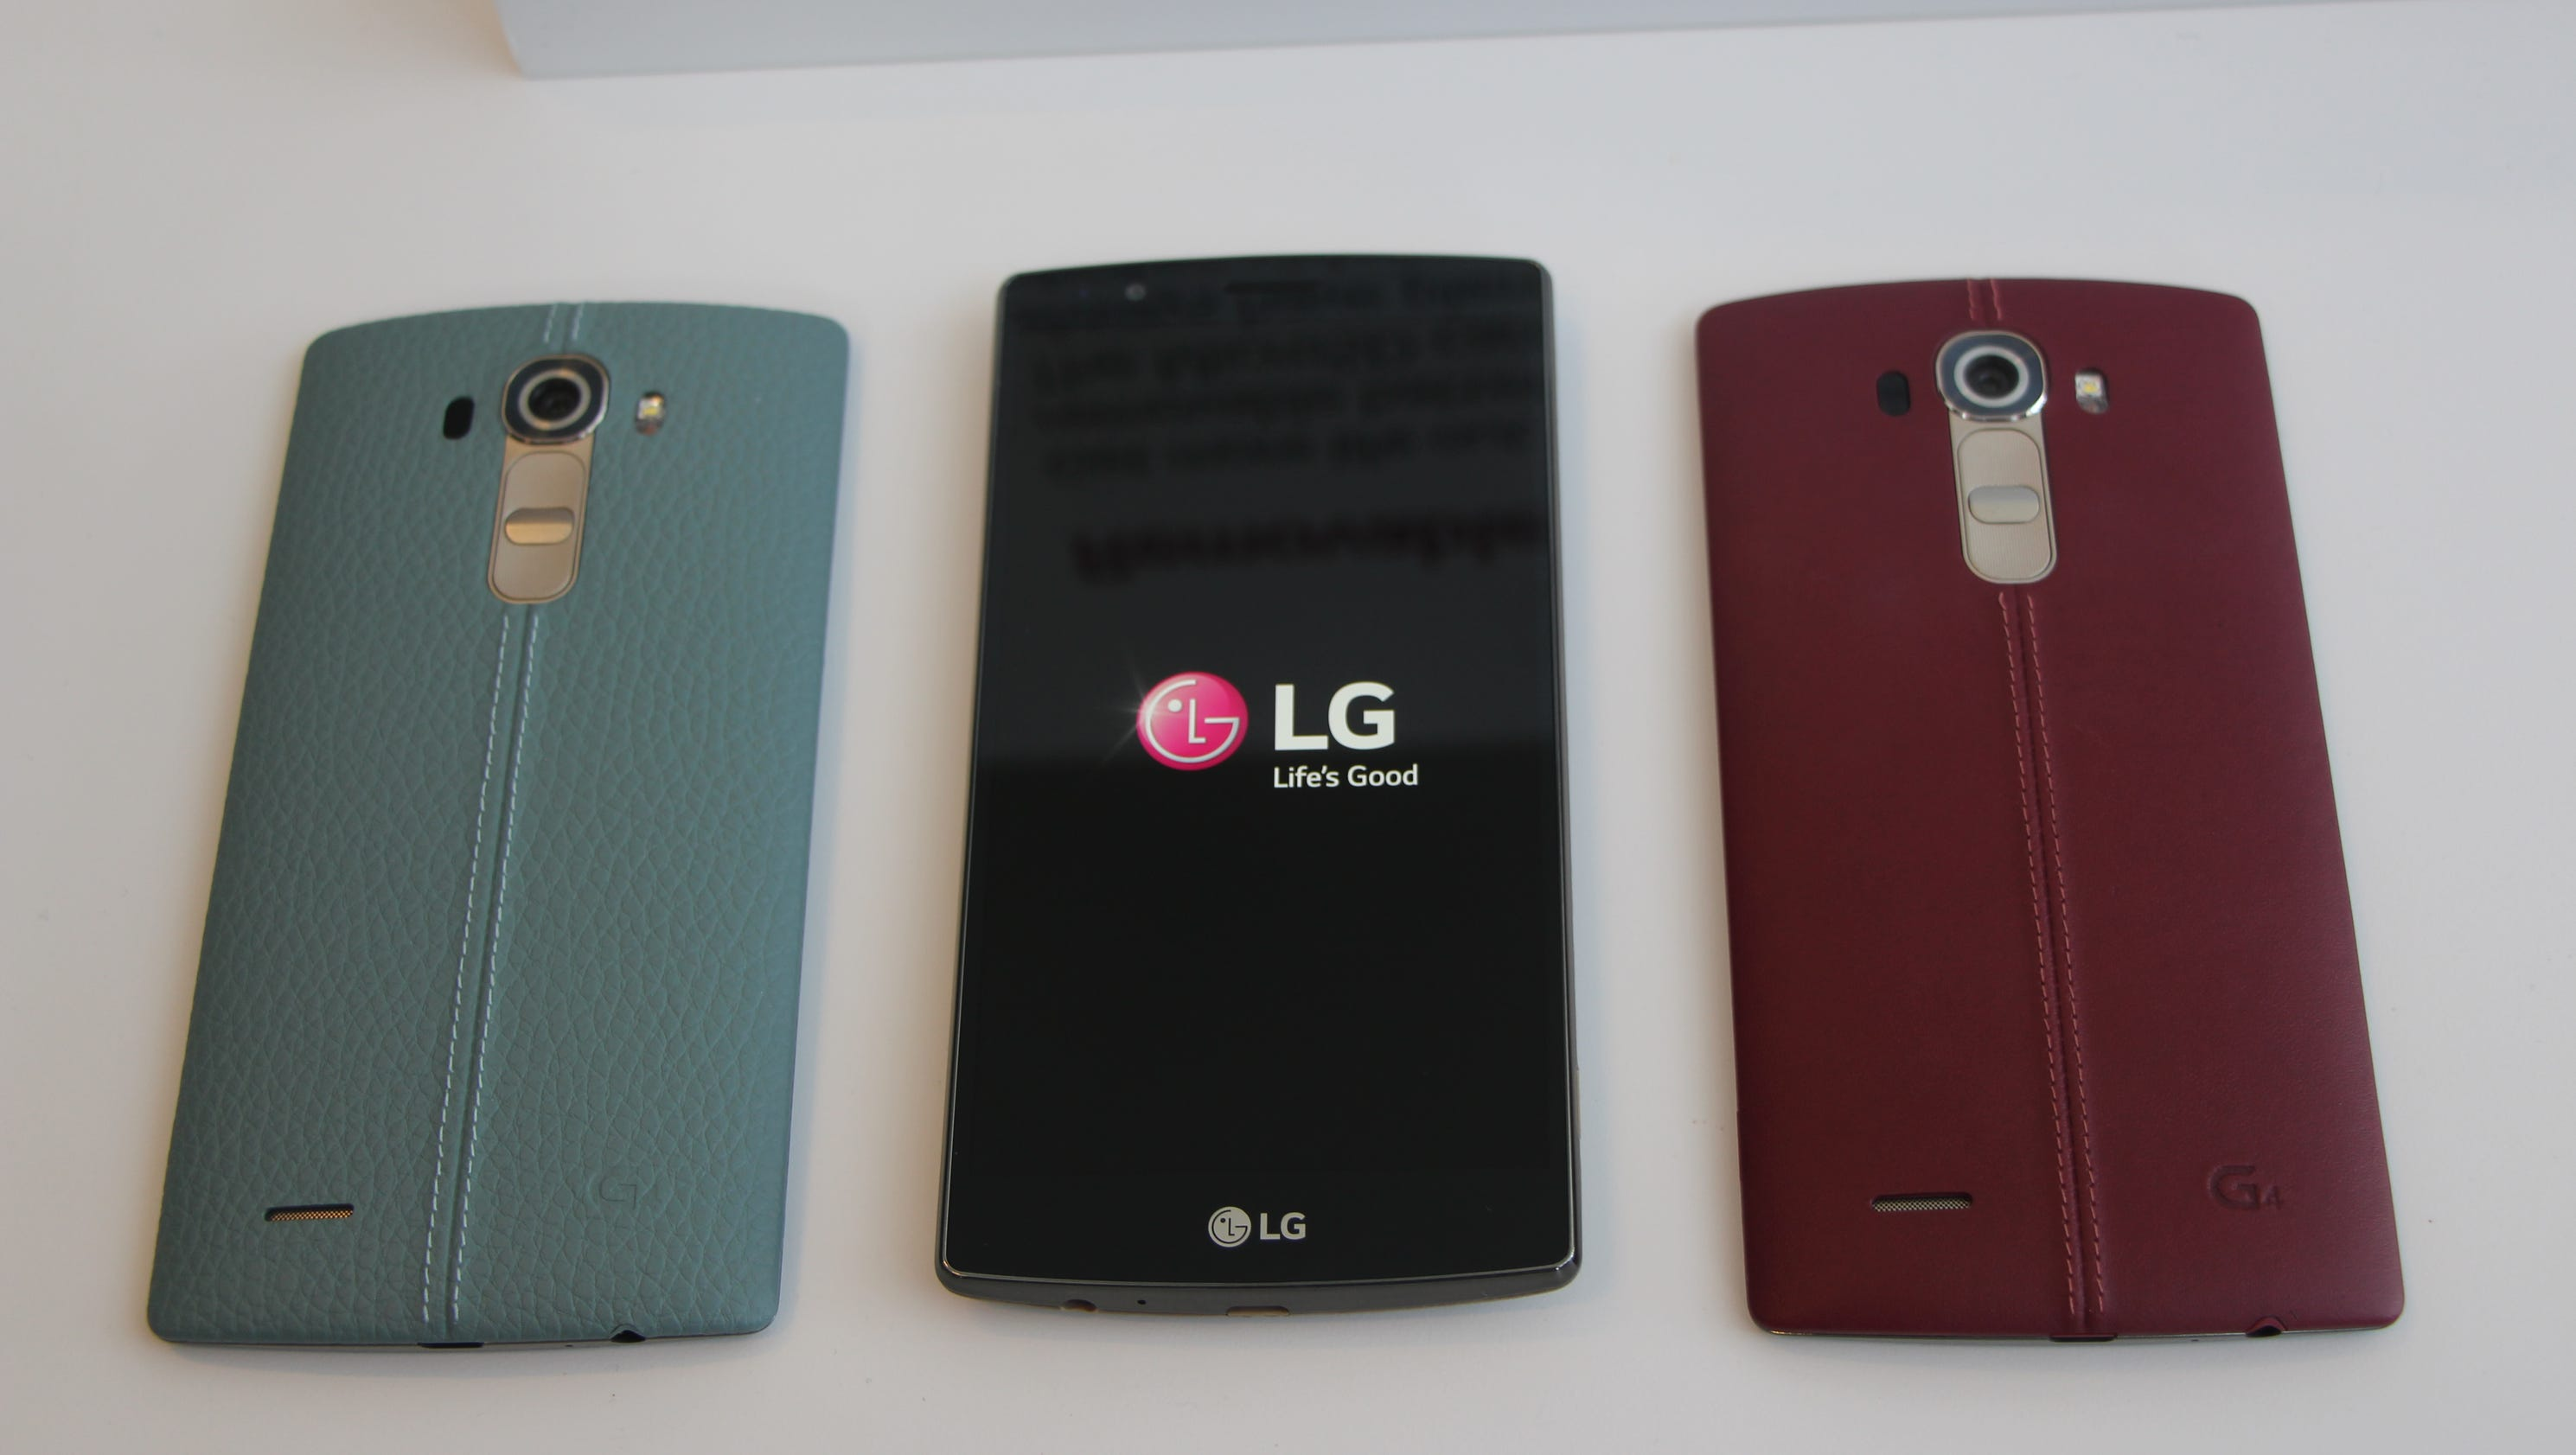 First look: LG's leather-clad G4 smartphone looks to fight ...